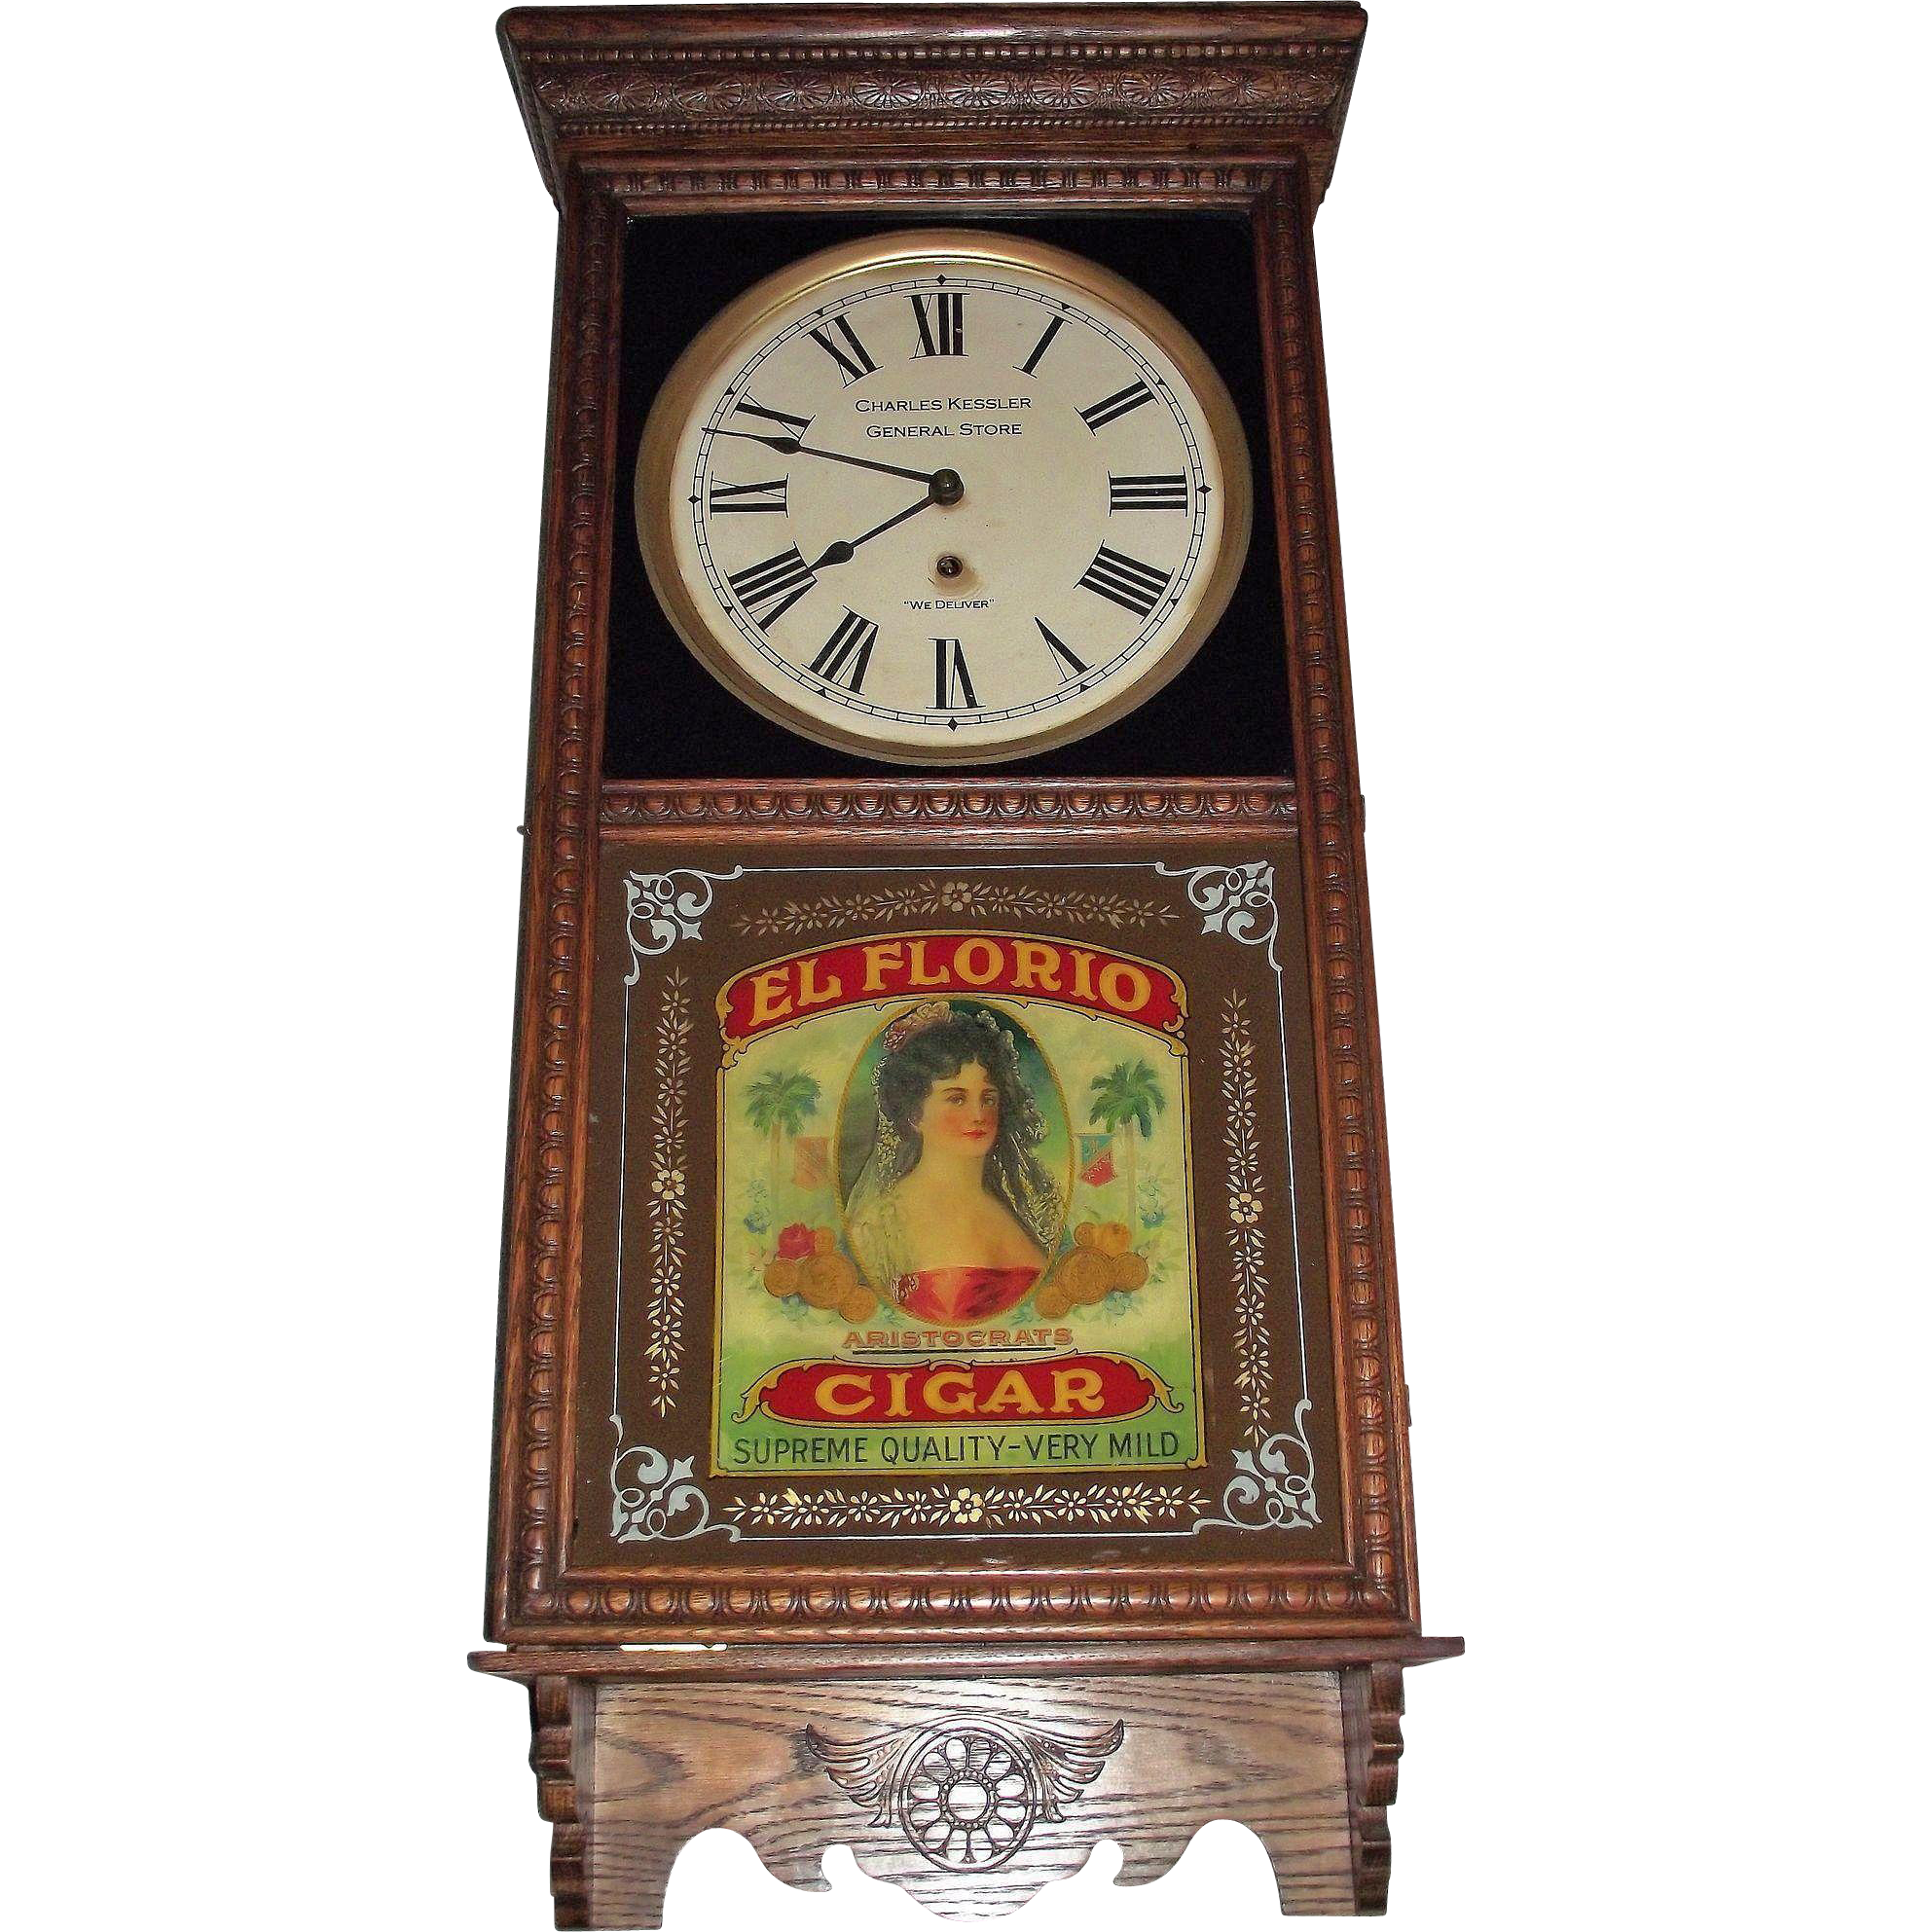 """Super Colorful """"El Floria * Aristocrat Cigars"""" Reverse Decorated Advertising Glass in a General Store Clock with a Golden Oak Case Circa 1925 !!!"""